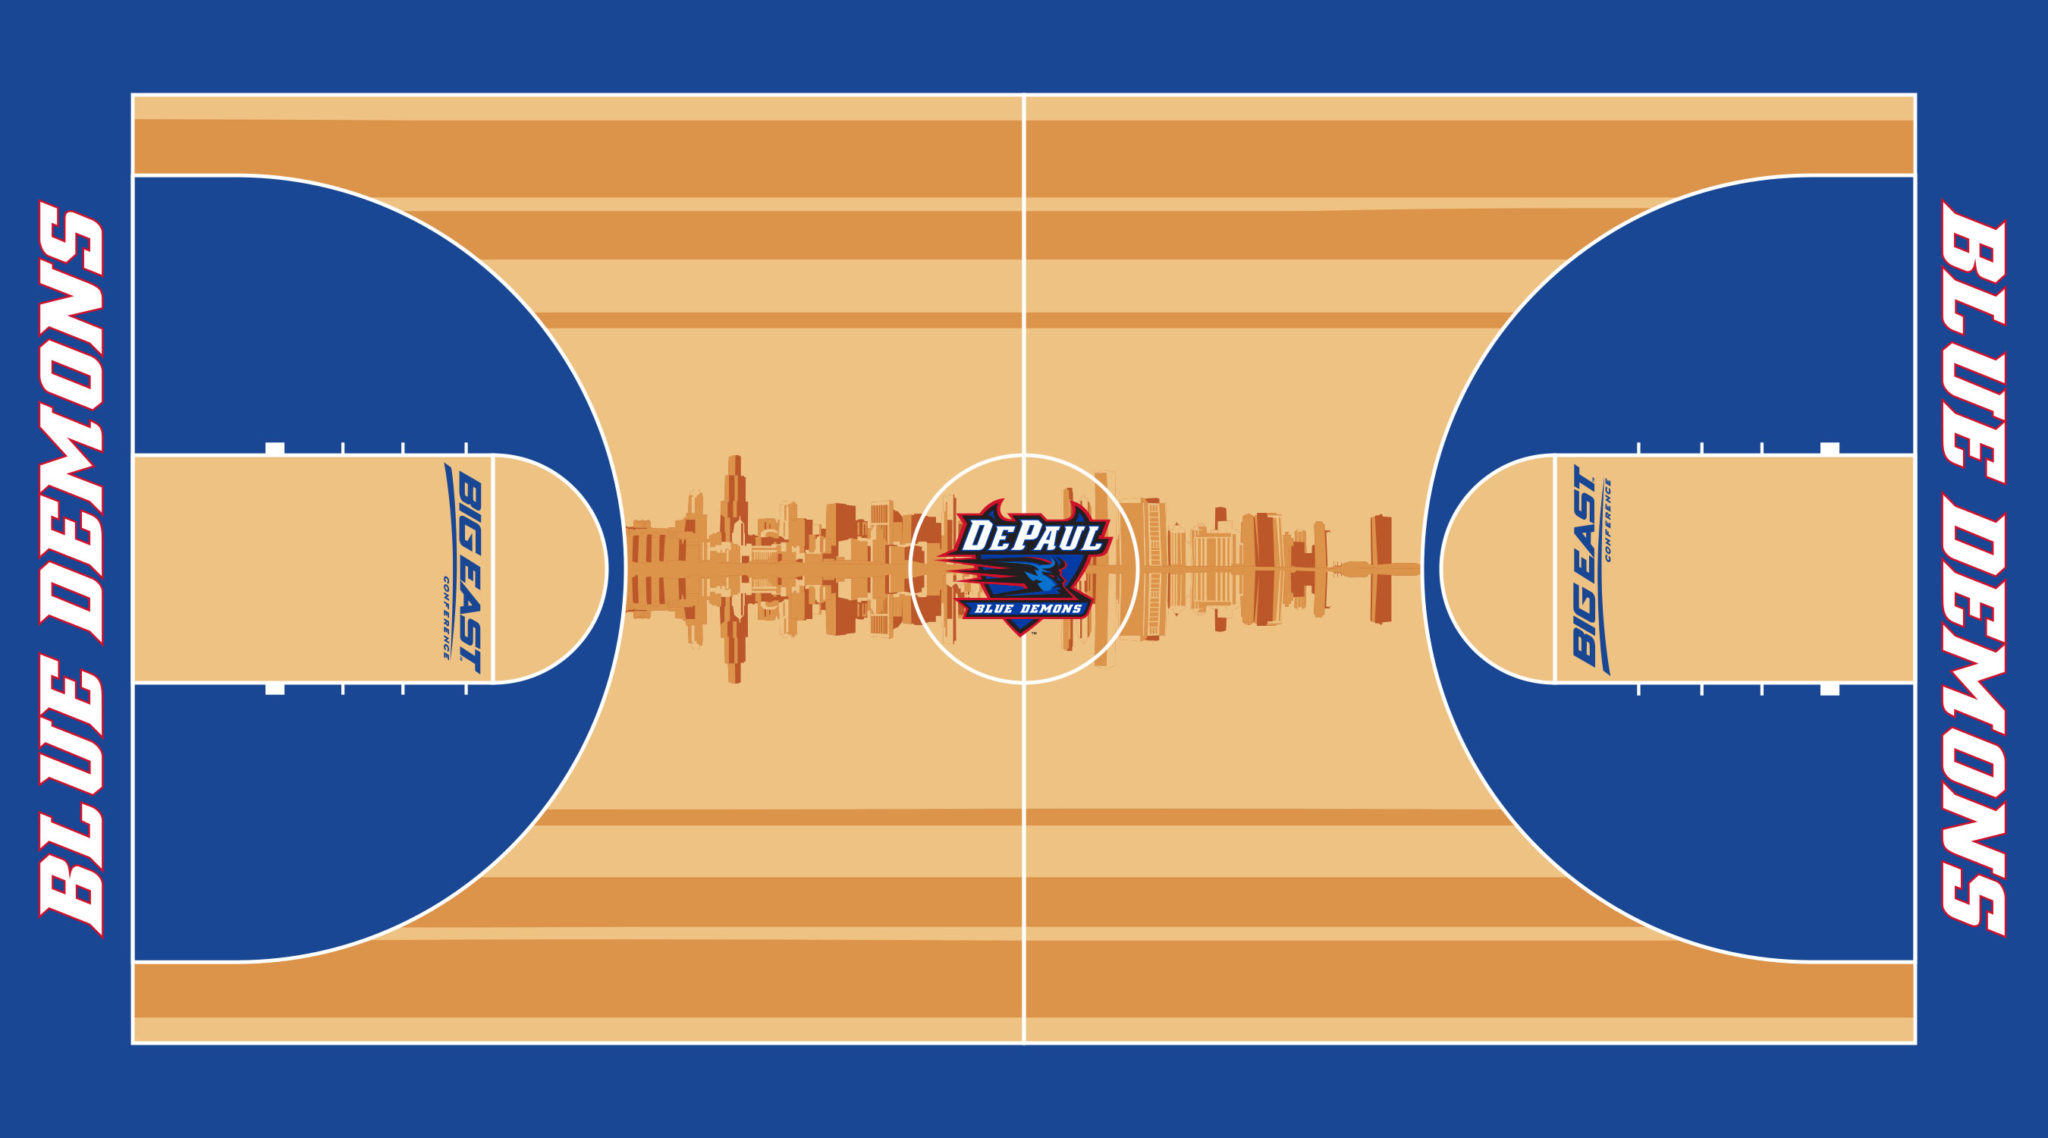 DePaul Men's Basketball Court for McCormick Place Designs